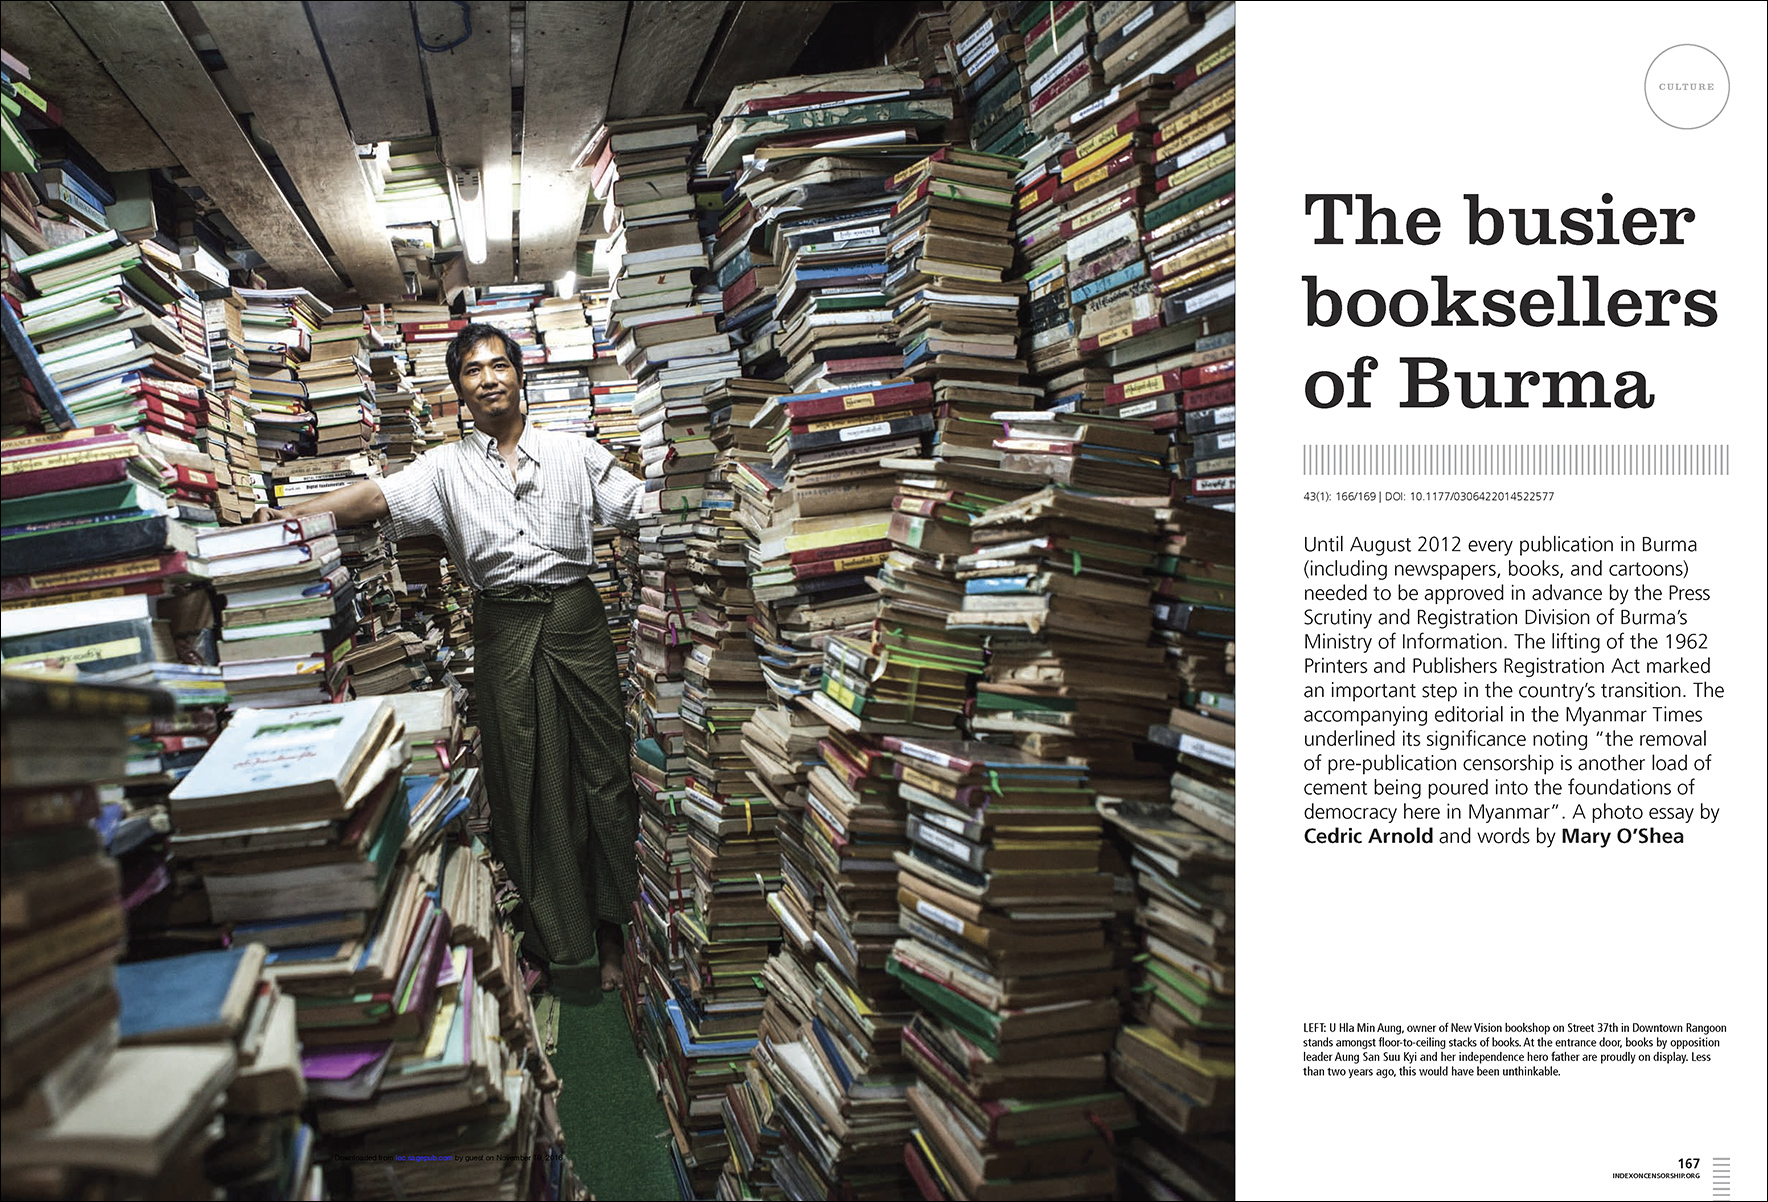 Index on censorship - Yangon Bookshops